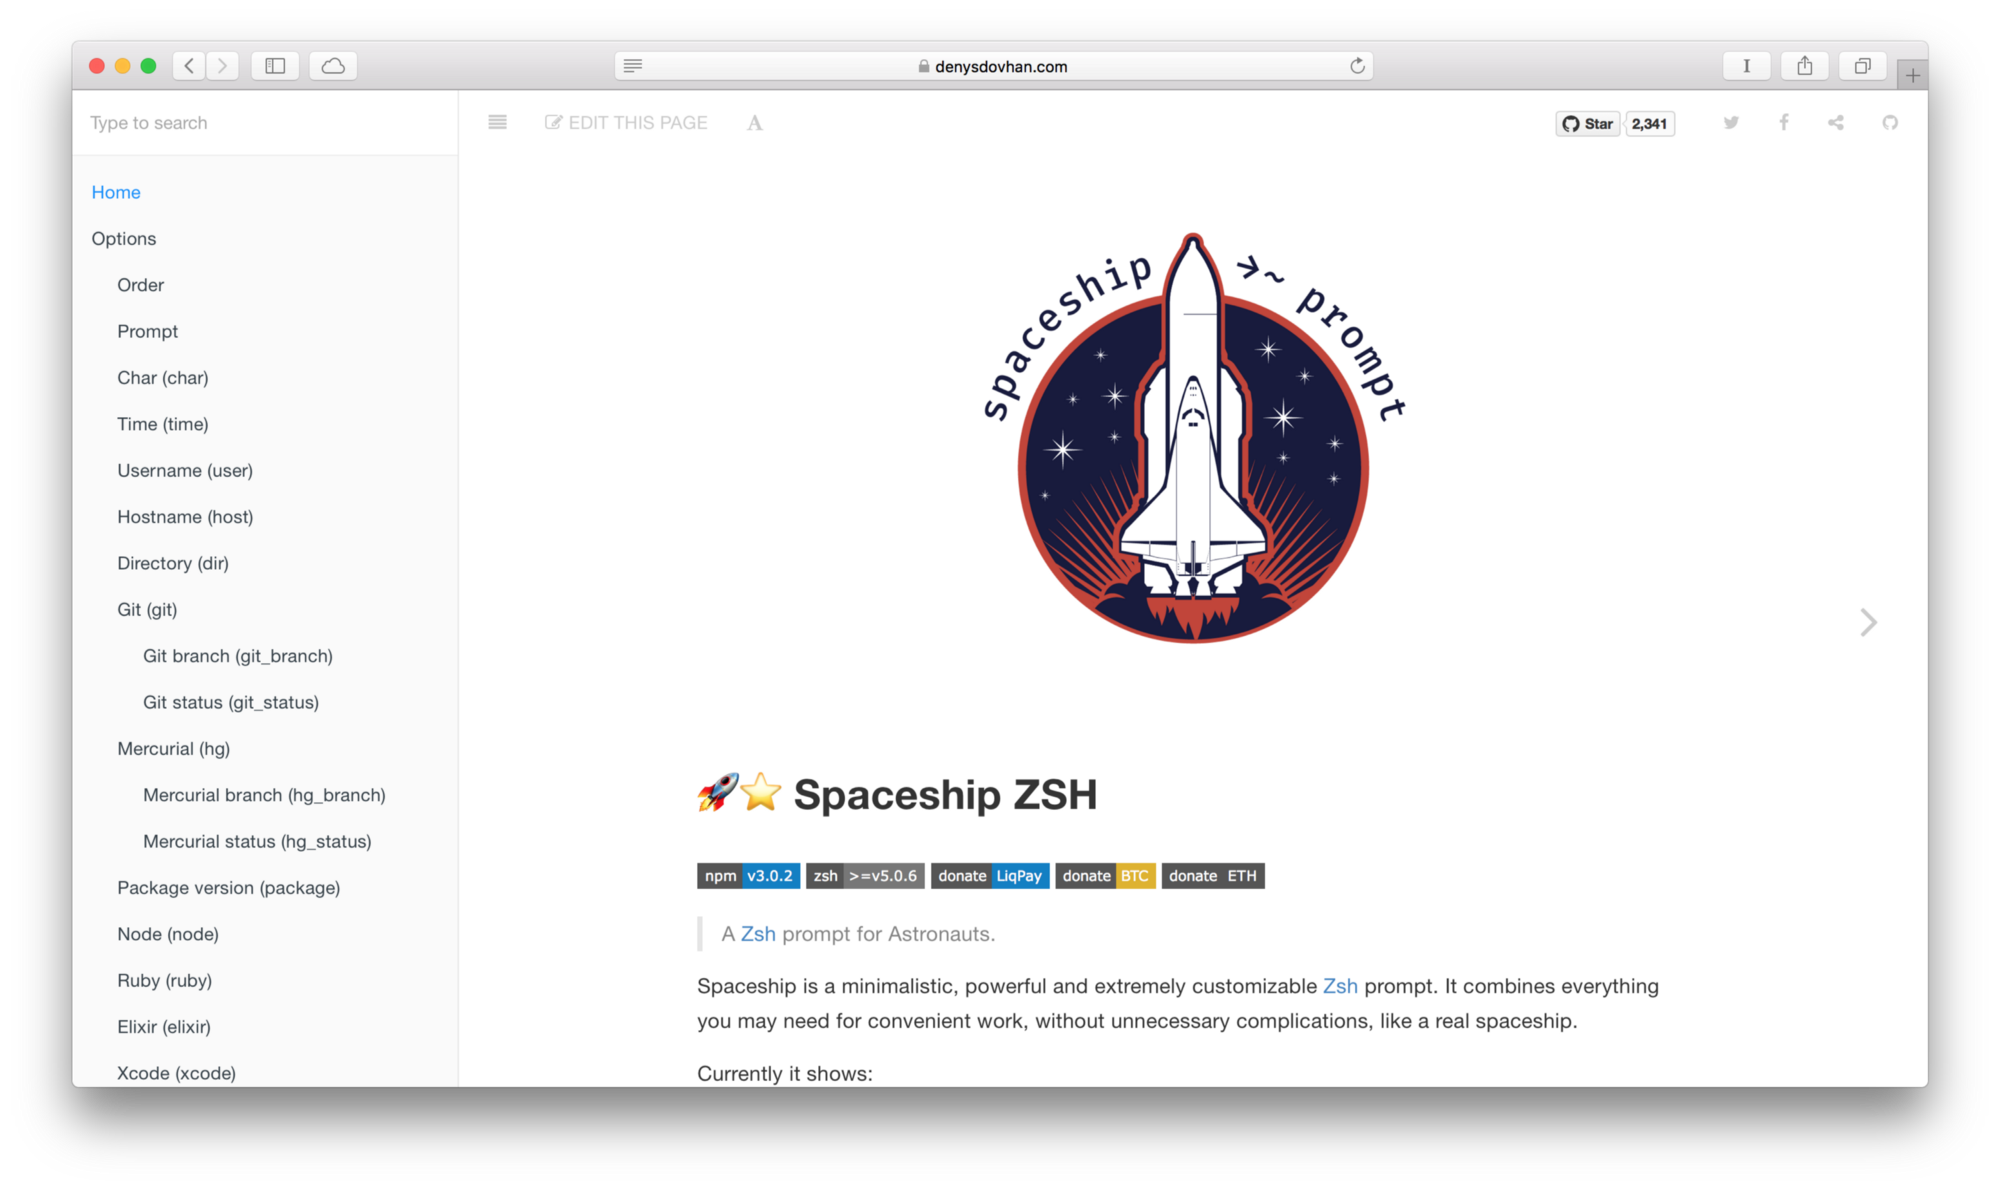 Meet Spaceship ZSH v3 0! - Denys Dovhan - Medium